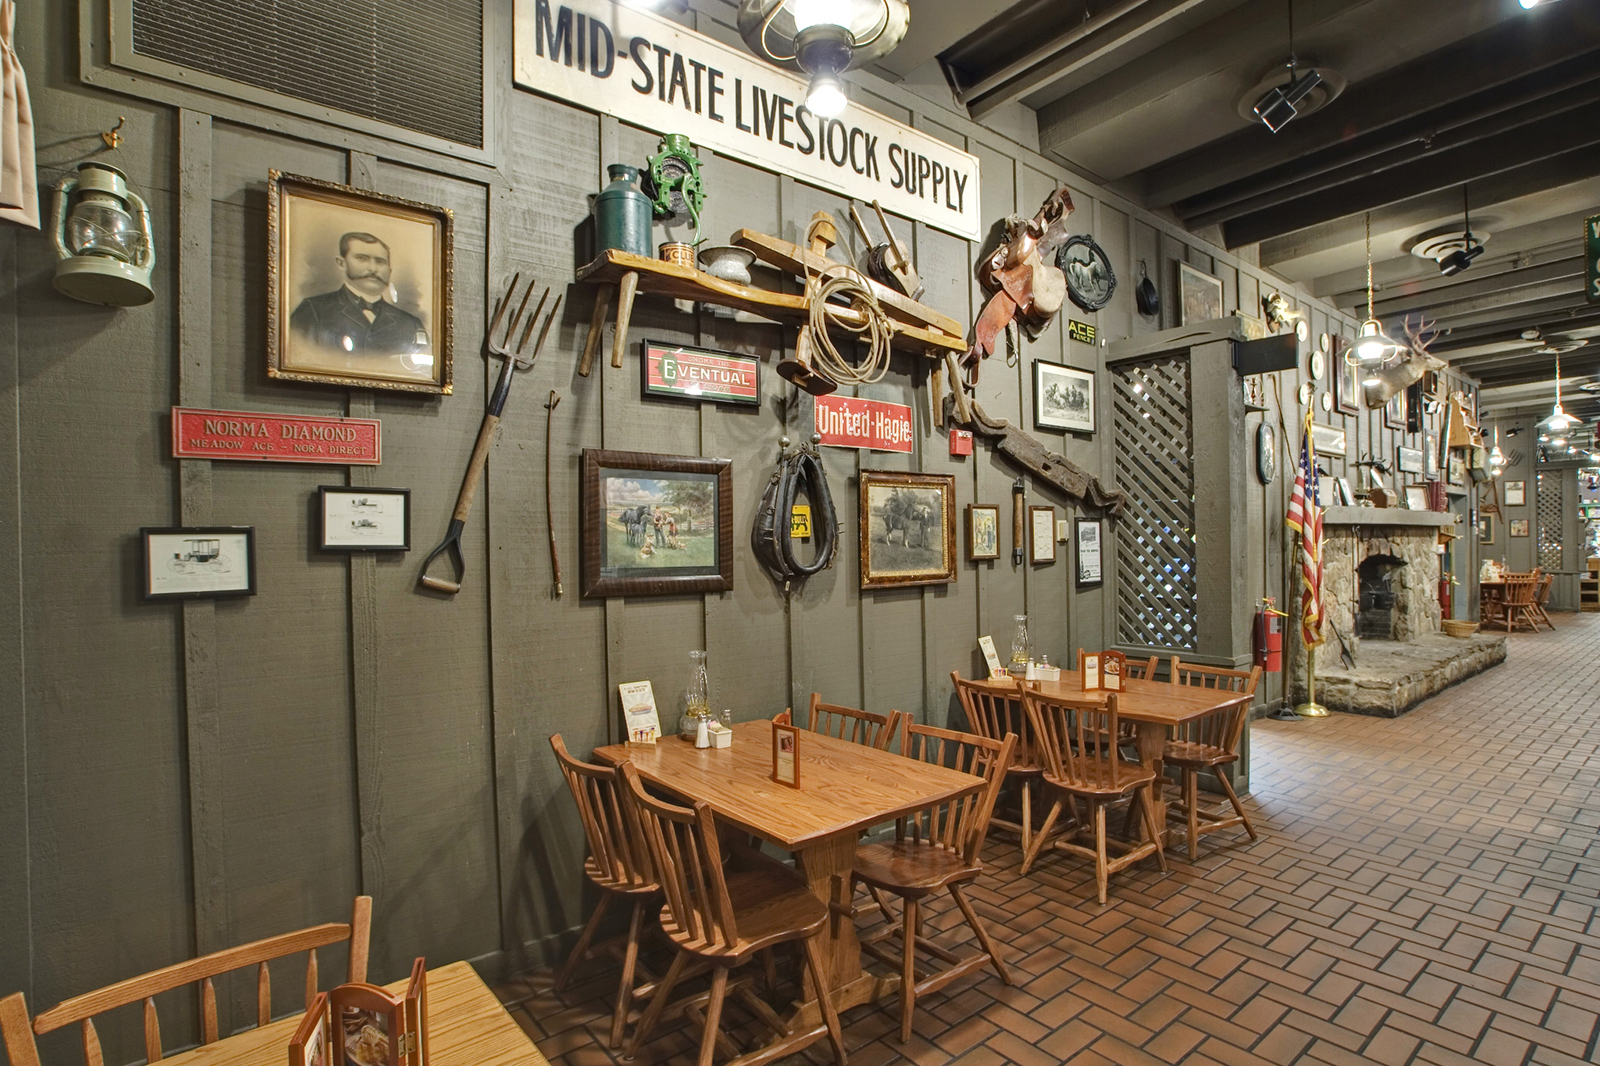 The walls of a cracker barrel dining room are adorned with things like old photos